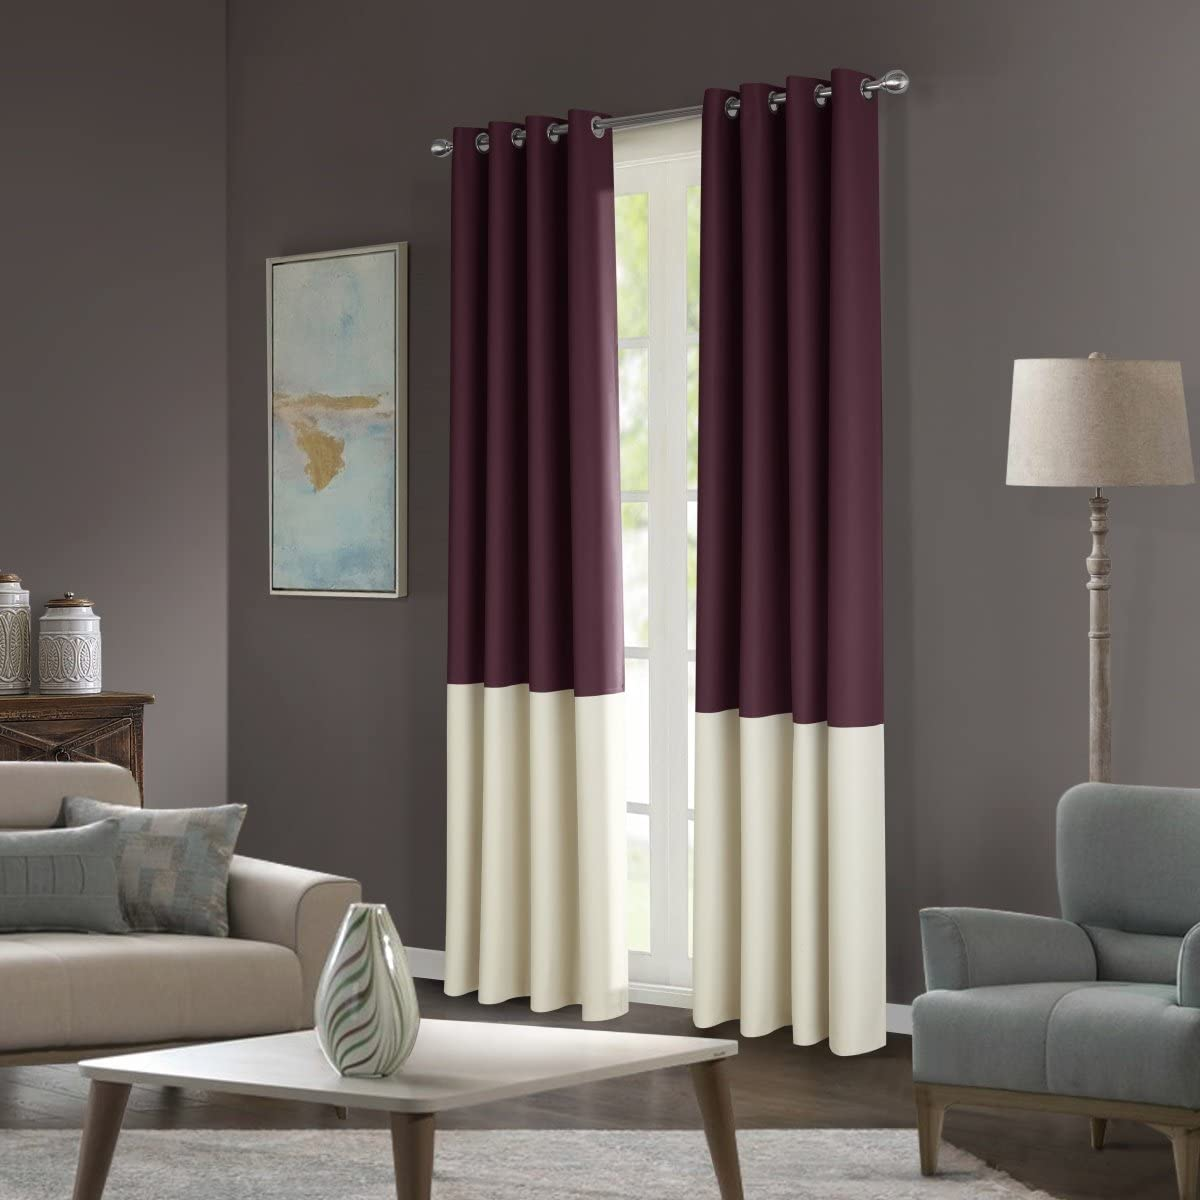 Dreaming Casa Stitching Style Two Tone Curtains Light Blocking Drapes Color Block Curtains 100 Wide Blackout Wide Panel Curtains Window Treatment Grommet Top 2 Panels Maroon Ivory 100 W x 63 L